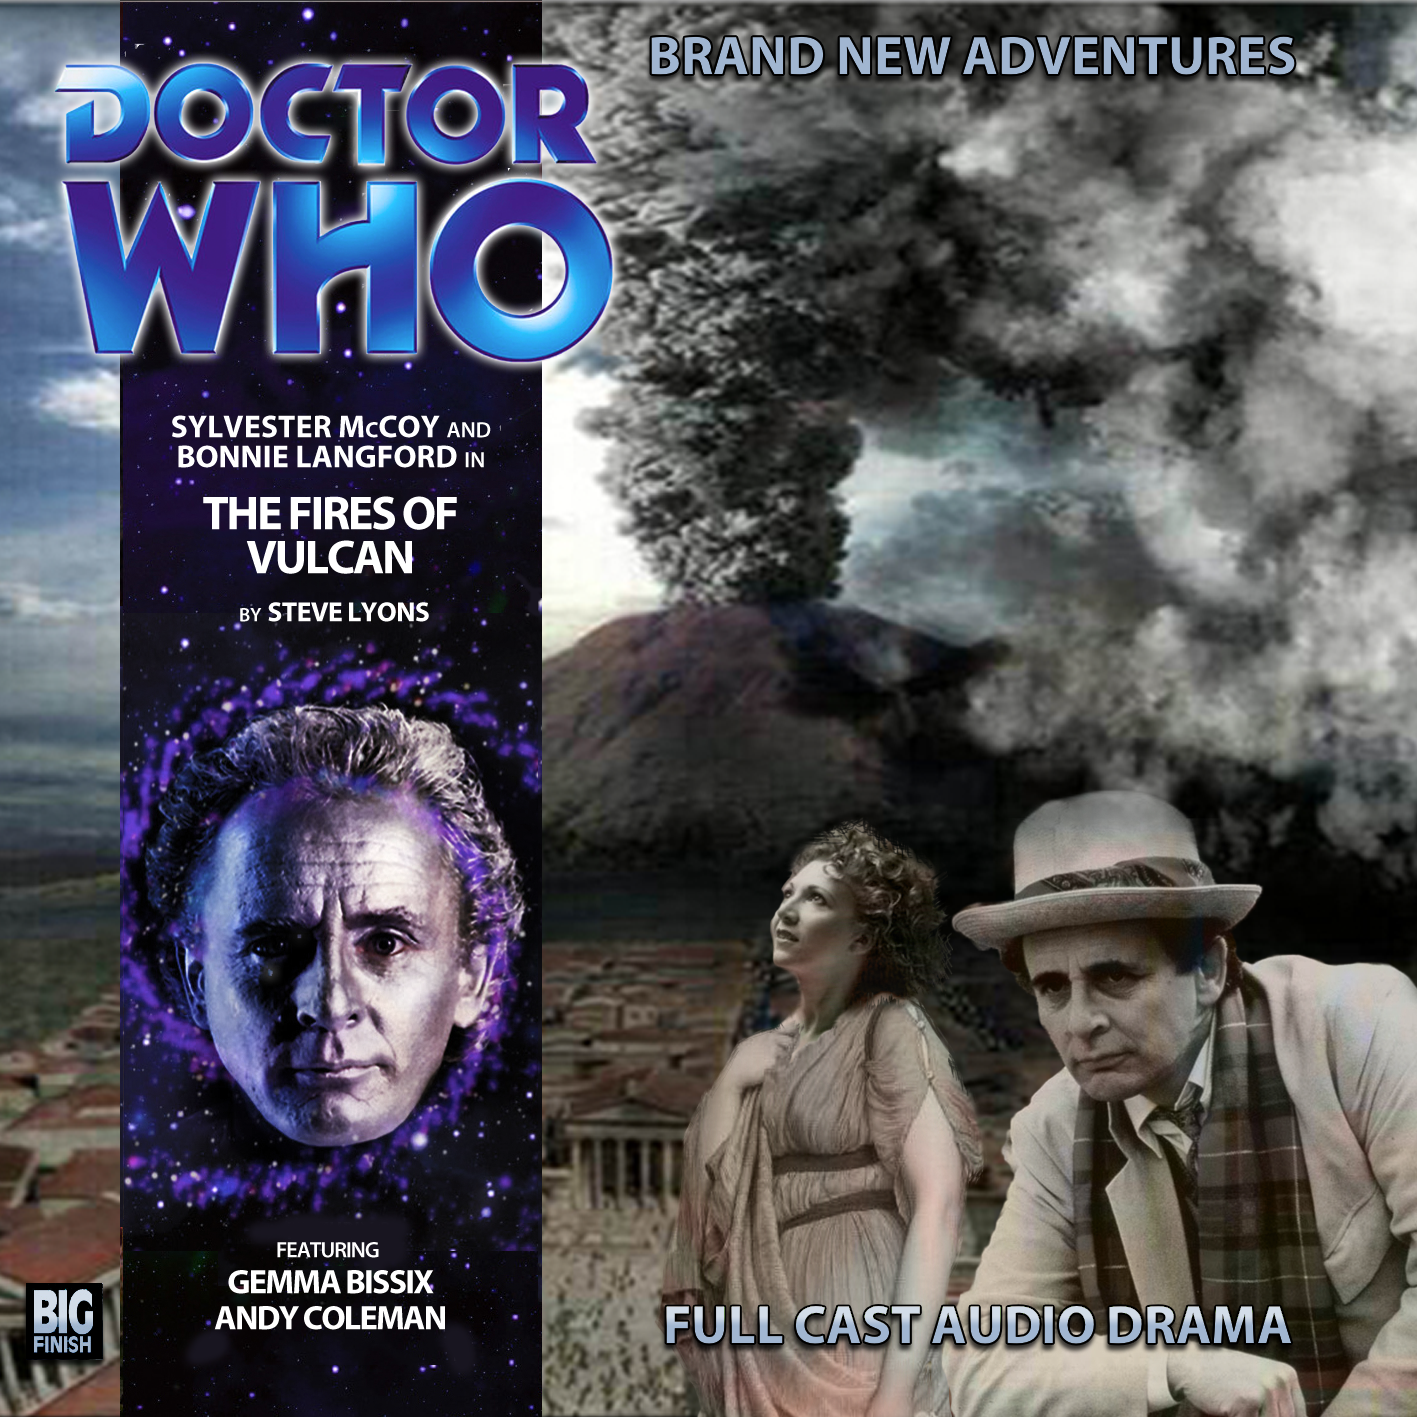 Big Finish Custom Cover Art – VHSWhovian Reviews